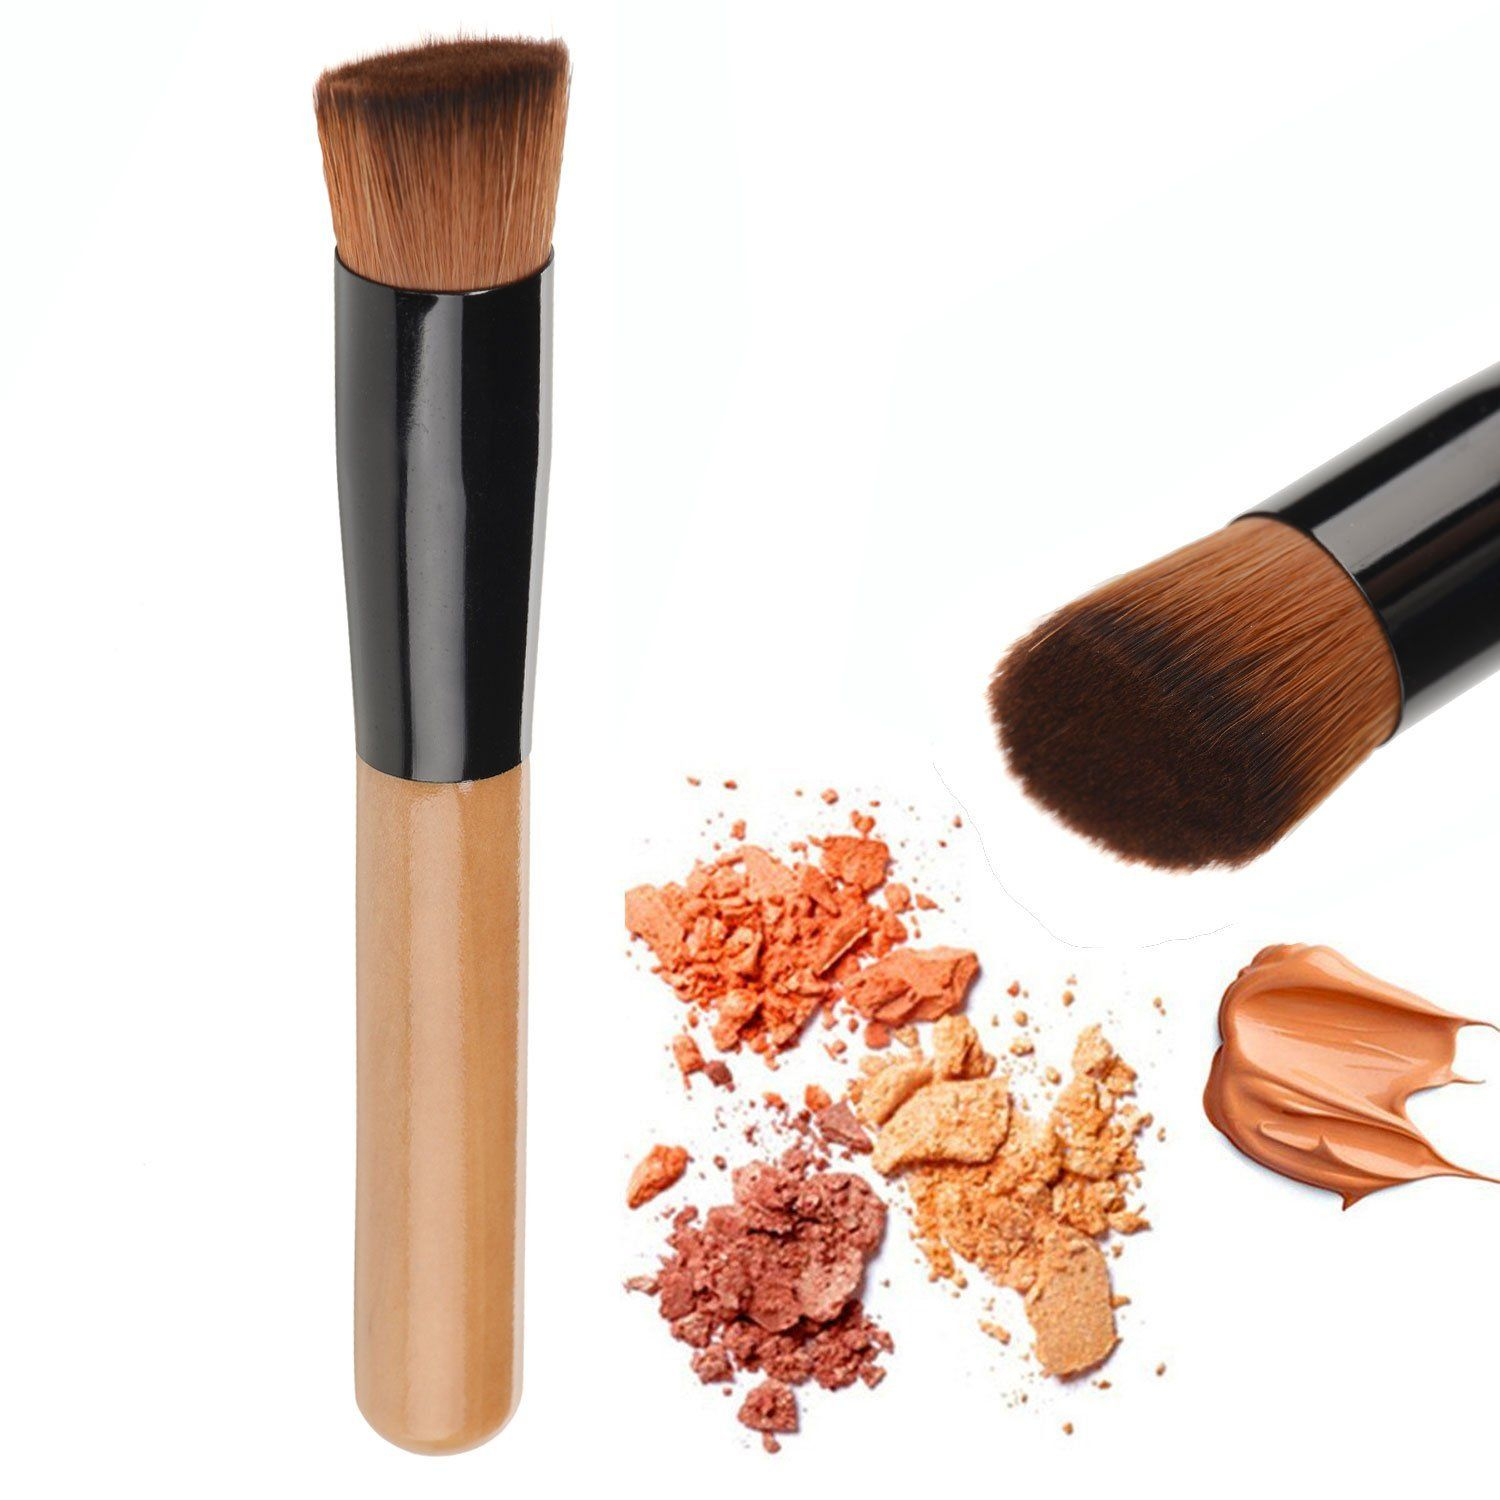 Kaith Synthetic Face Liquid Foundation Makeup Brush Flat